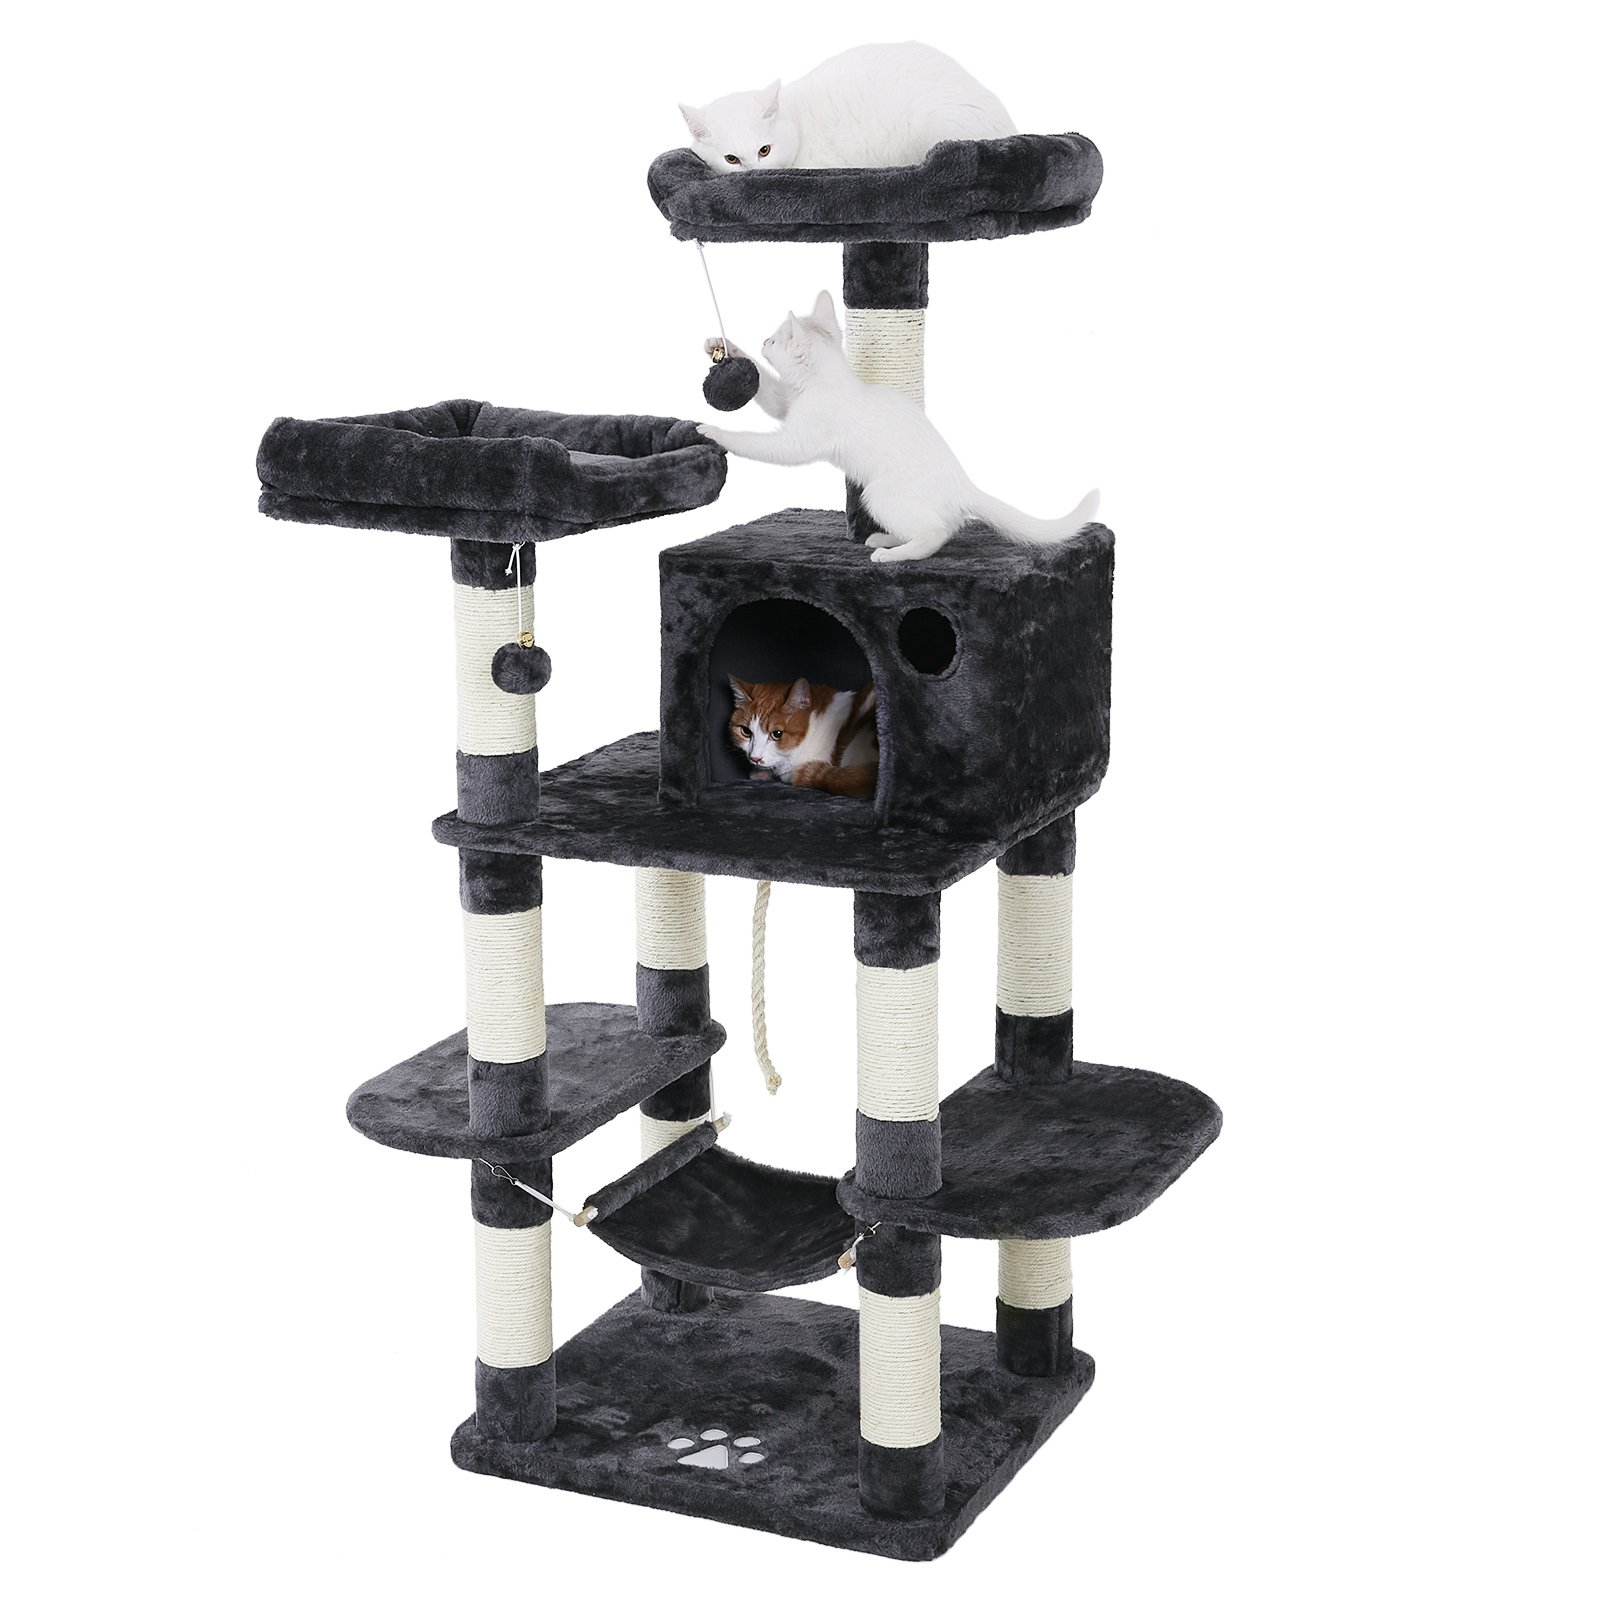 FEANDREA Multi-Level Cat Tree for Big Cats, Stable Cat Tower, Gray UPCT85G by FEANDREA